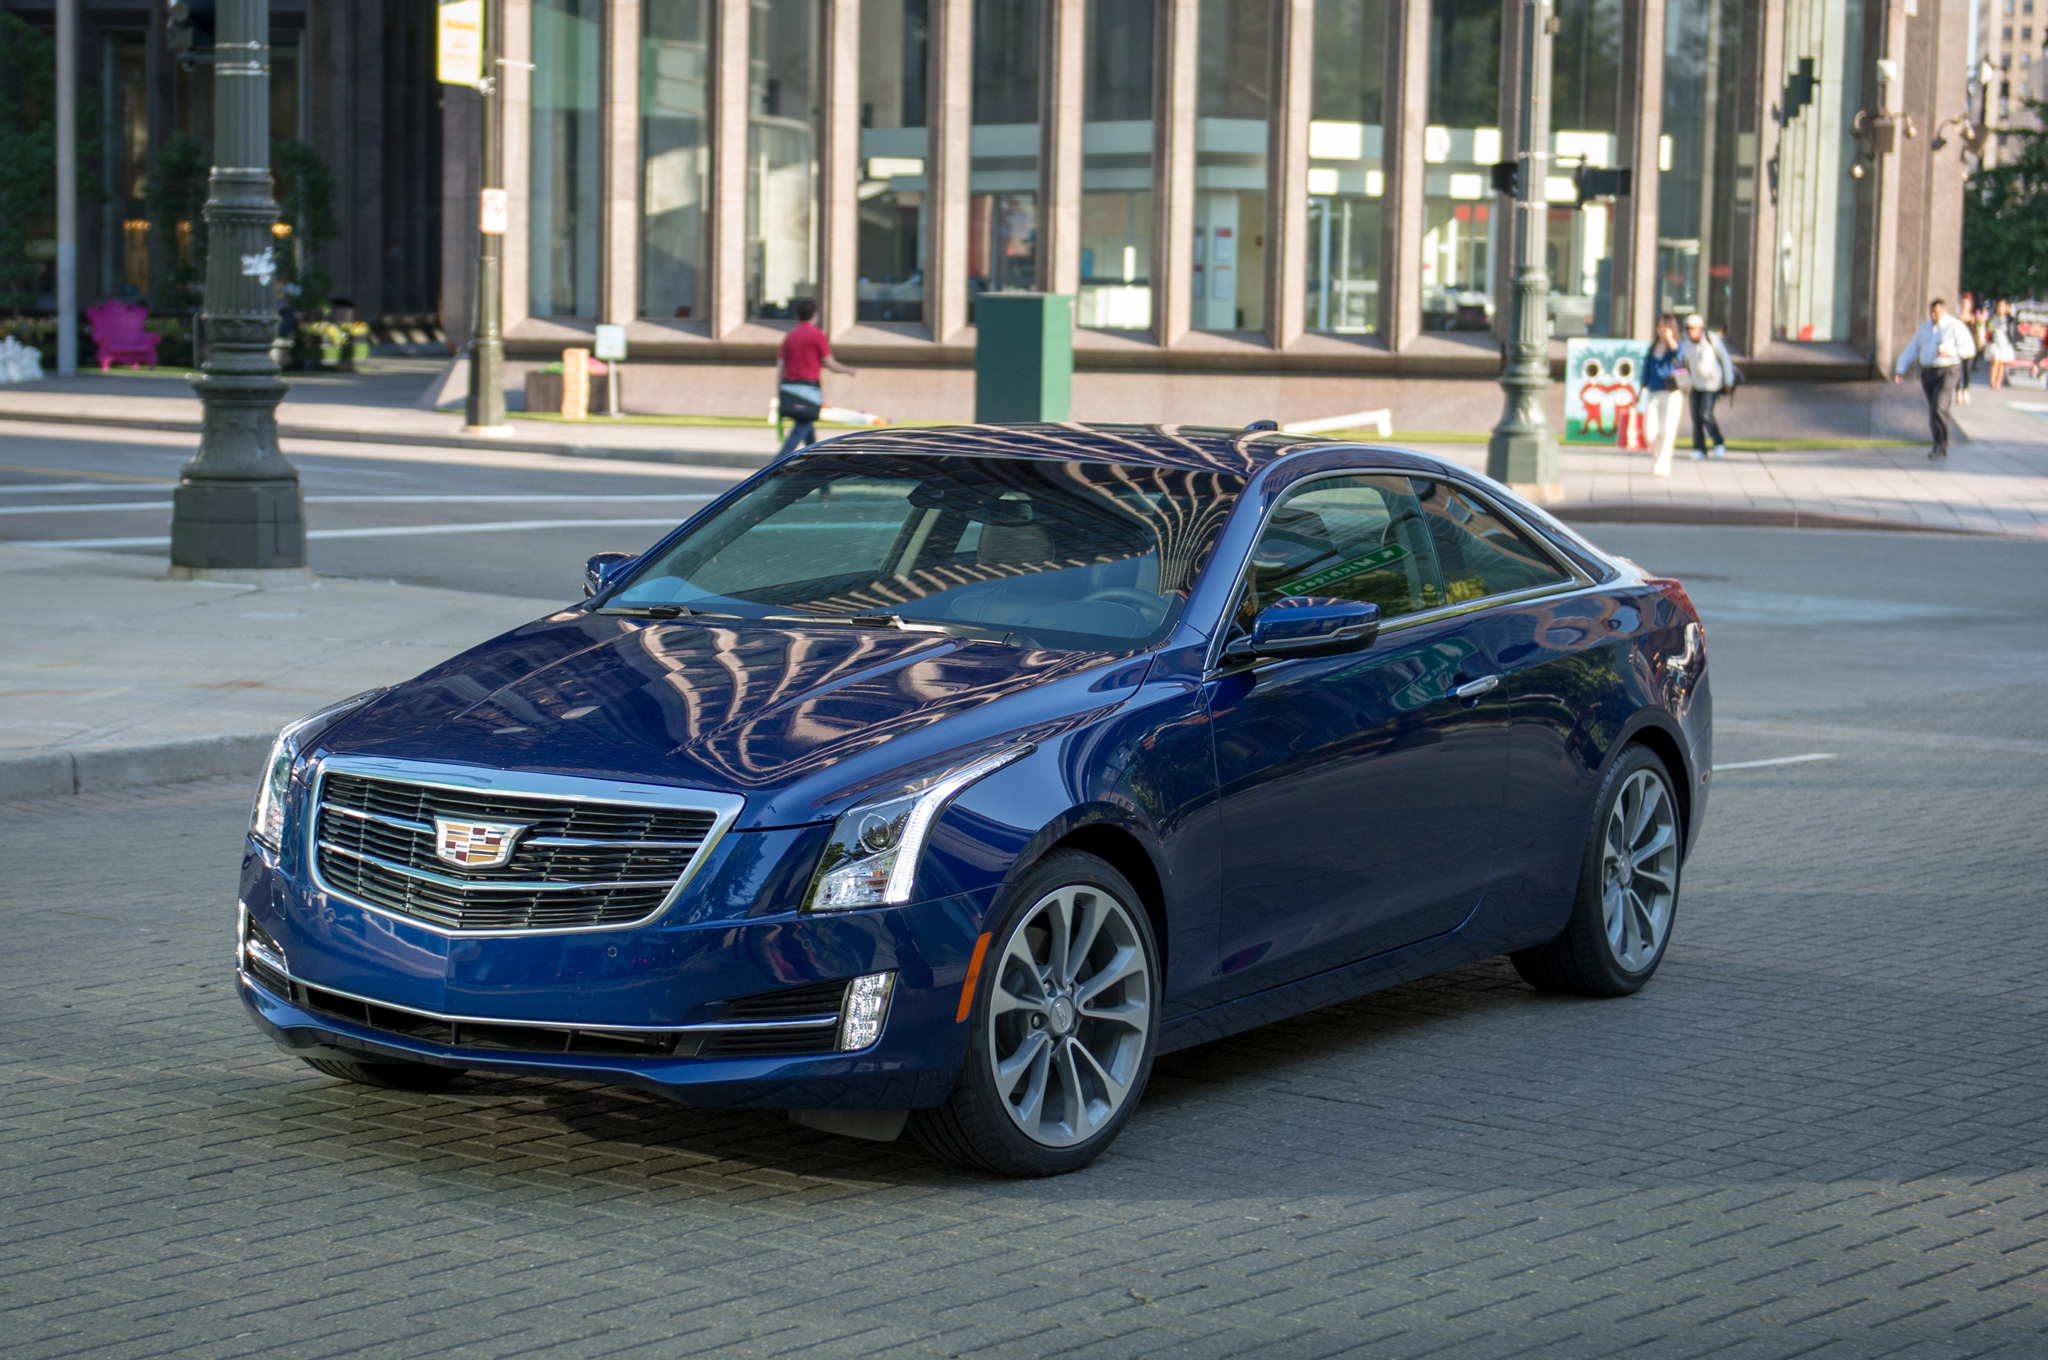 Featured Image of 2015 Cadillac ATS Coupe